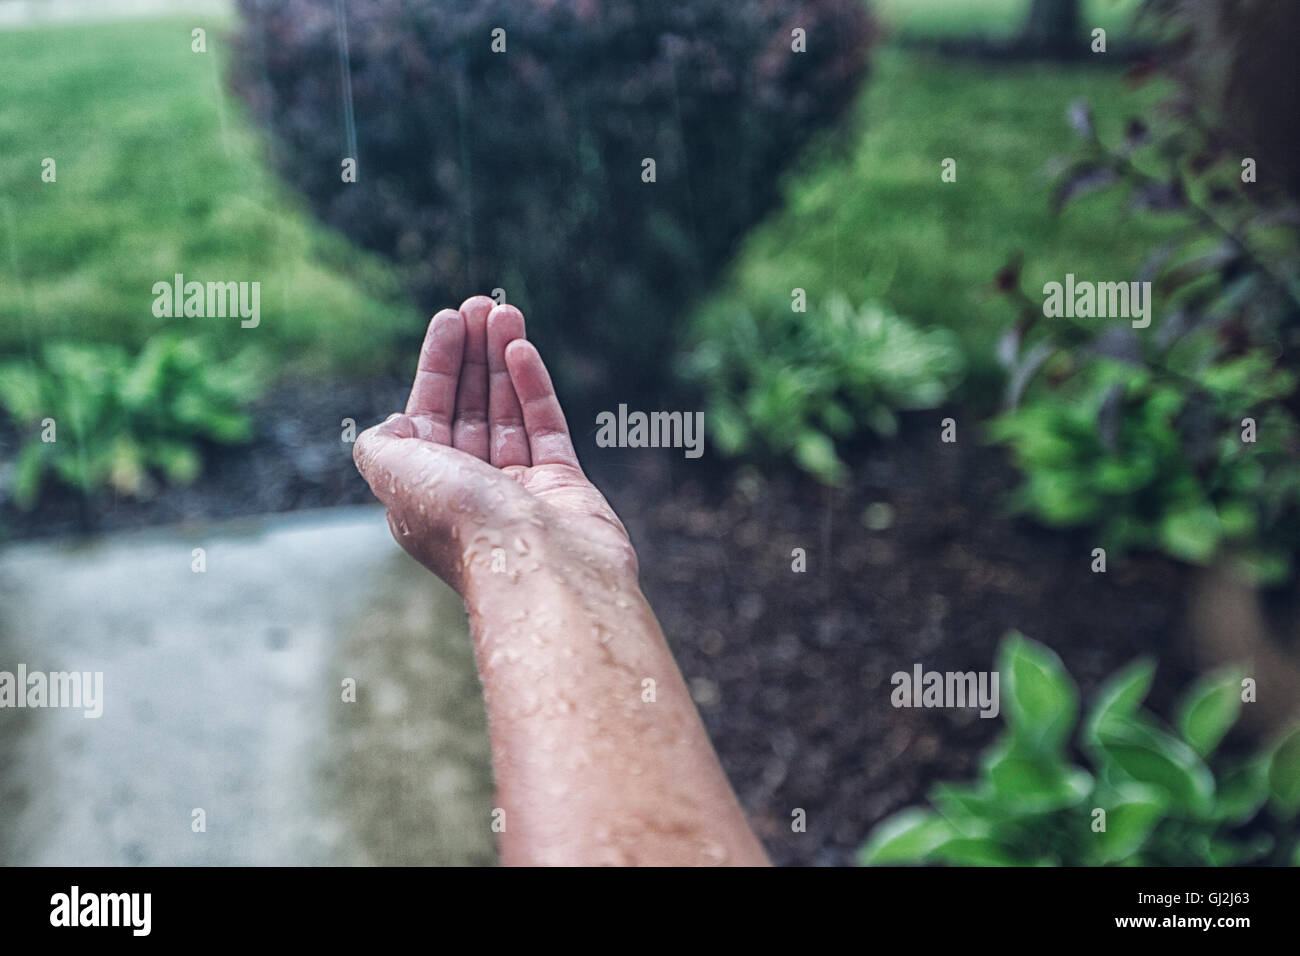 Girls cupped hand catching rain - Stock Image